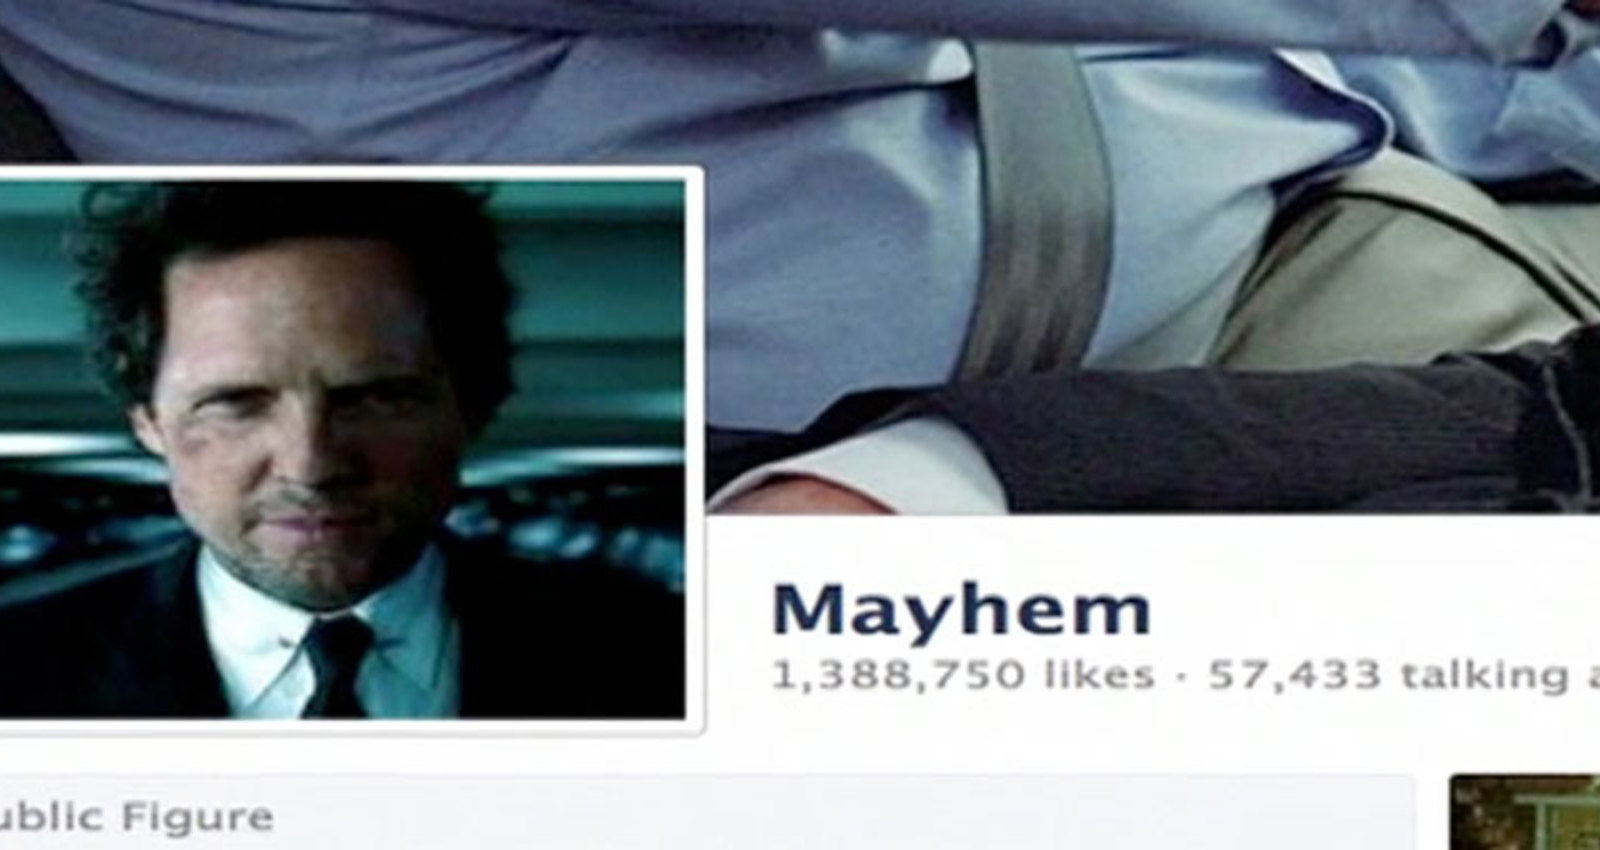 Facebook Mayhem